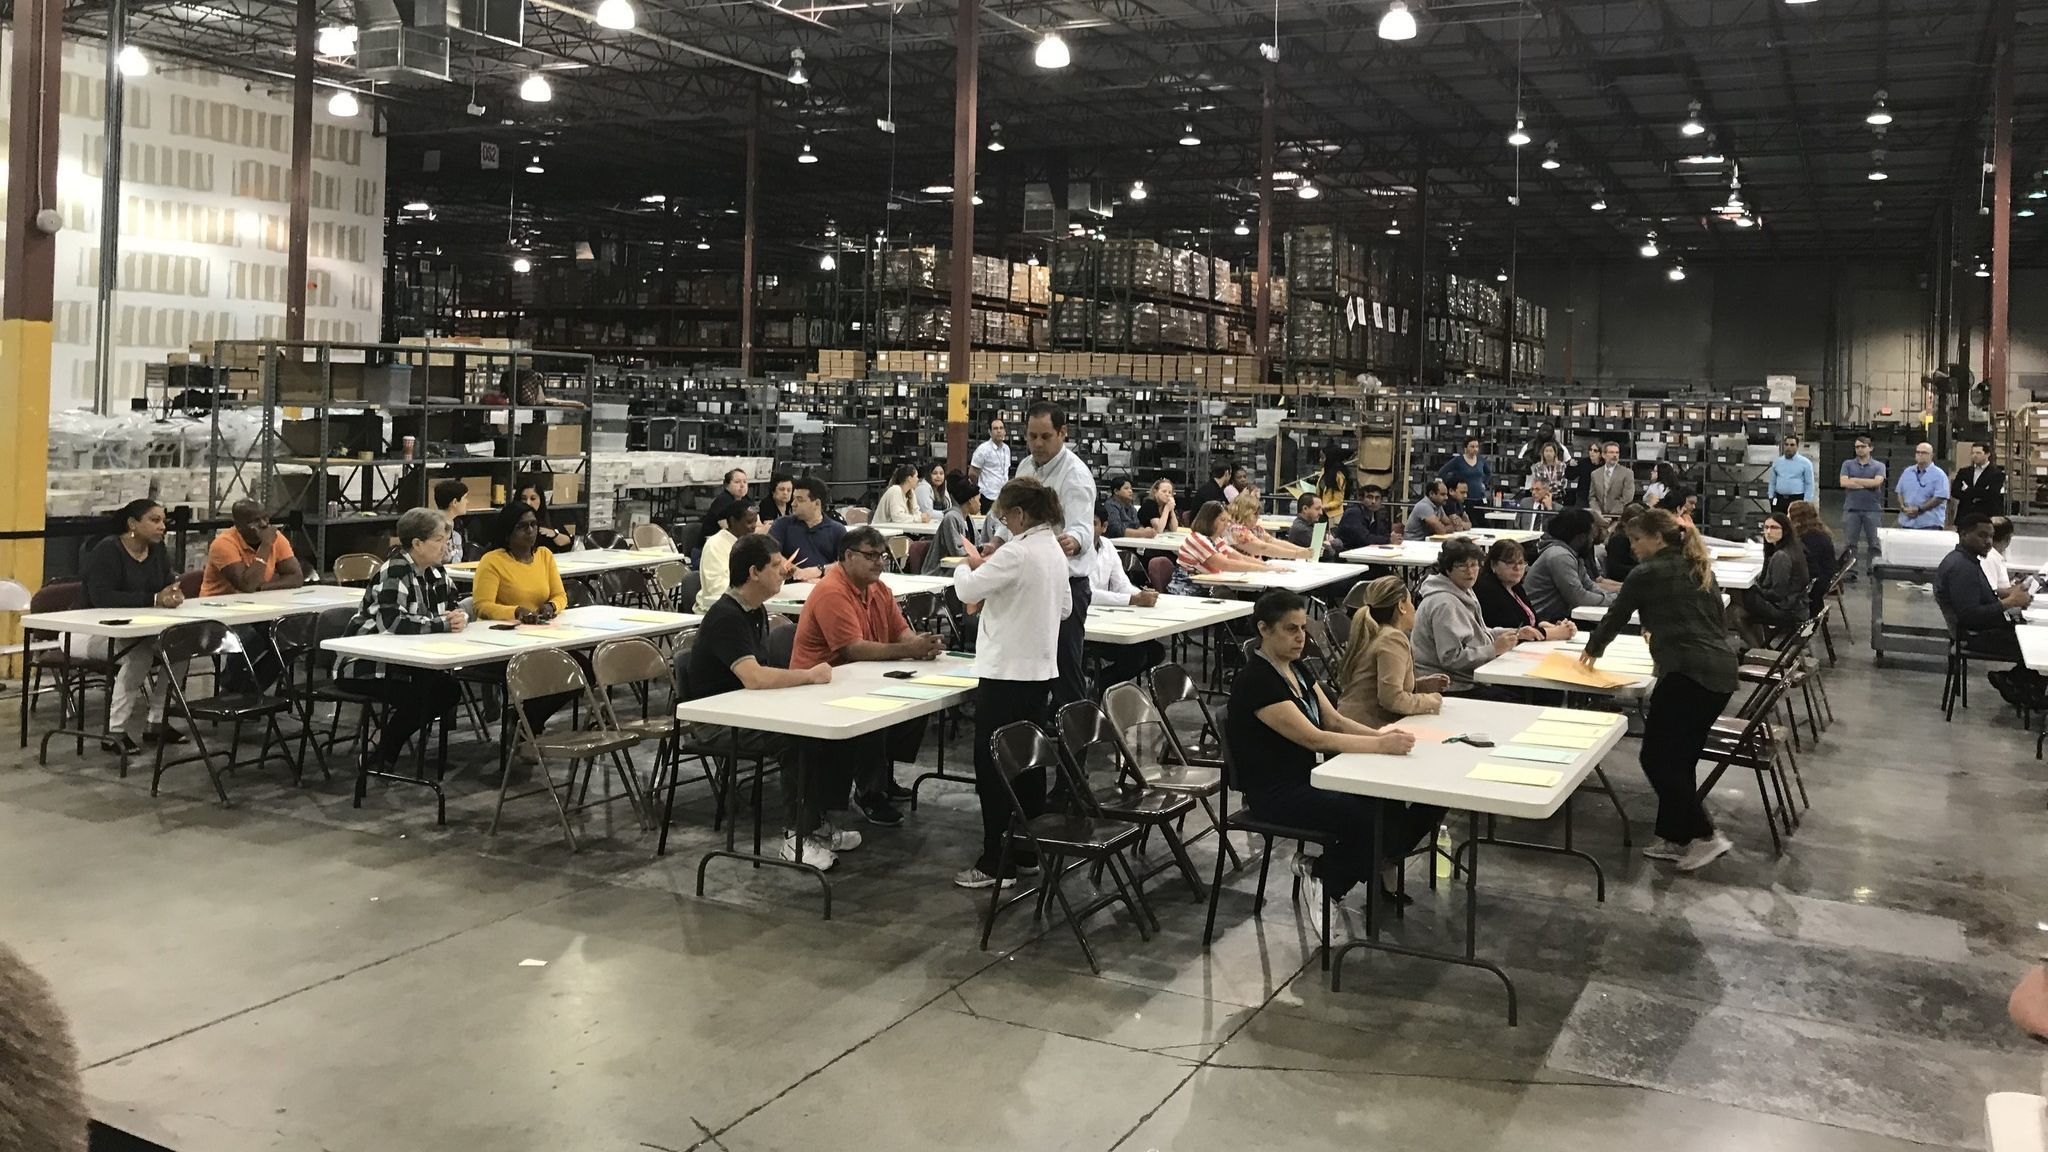 Last second: The Florida recount deadline was noon. Palm Beach got their results in at 11:59:59.